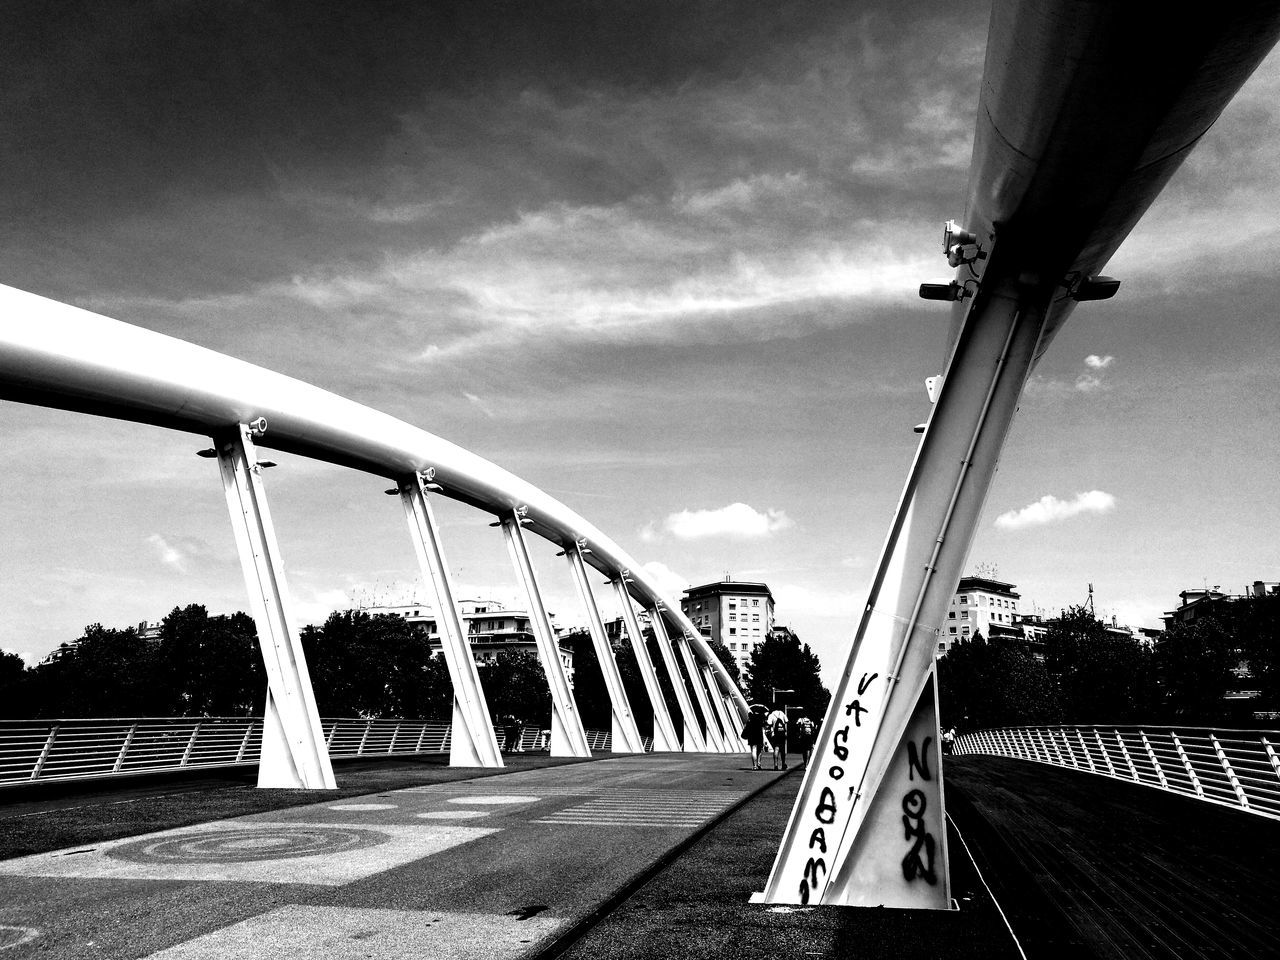 transportation, sky, day, real people, cloud - sky, built structure, one person, bridge - man made structure, architecture, outdoors, tree, people